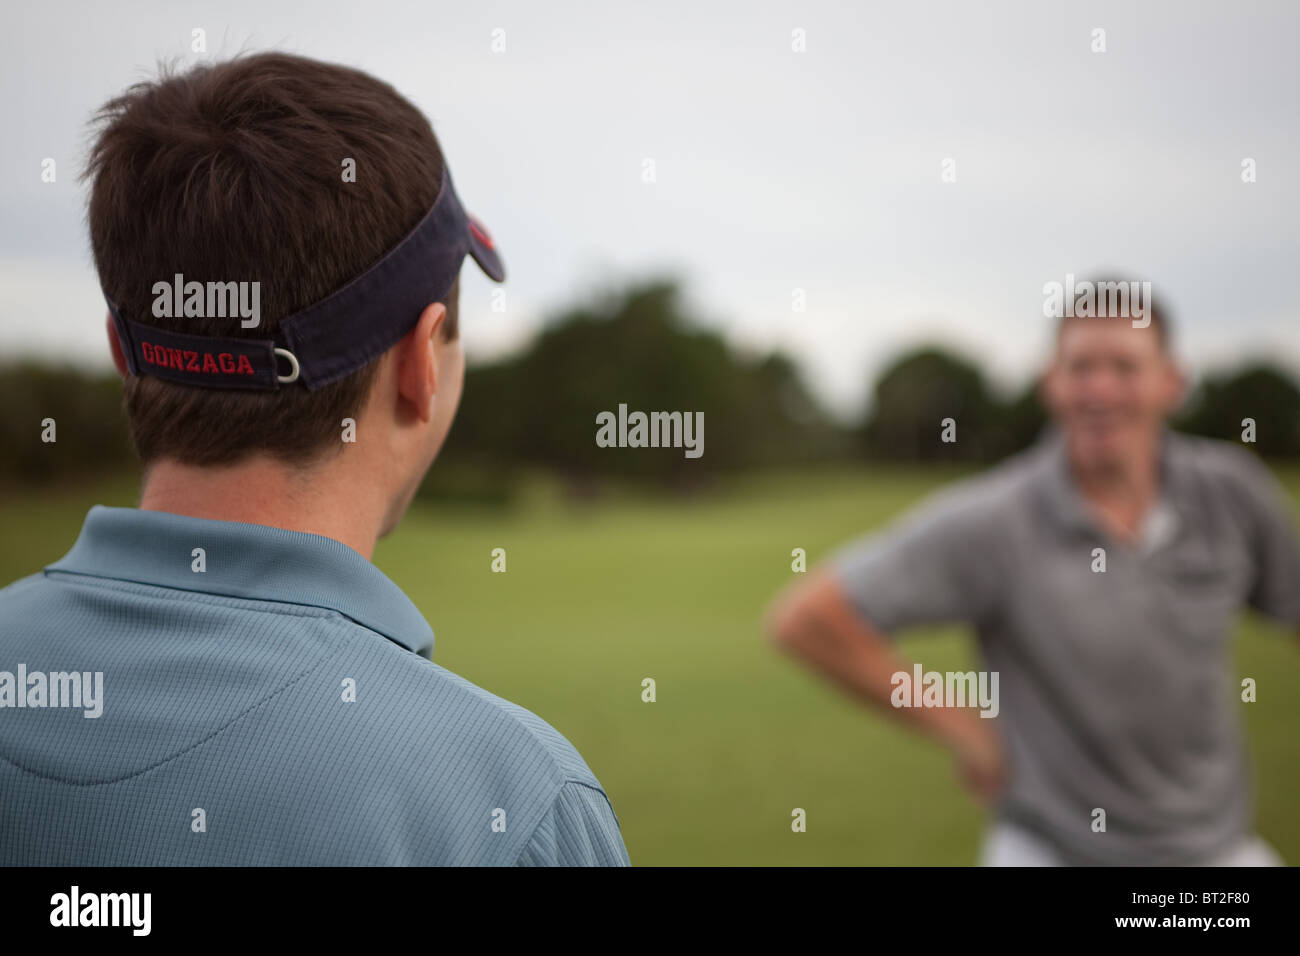 Two golfers tease each other. - Stock Image